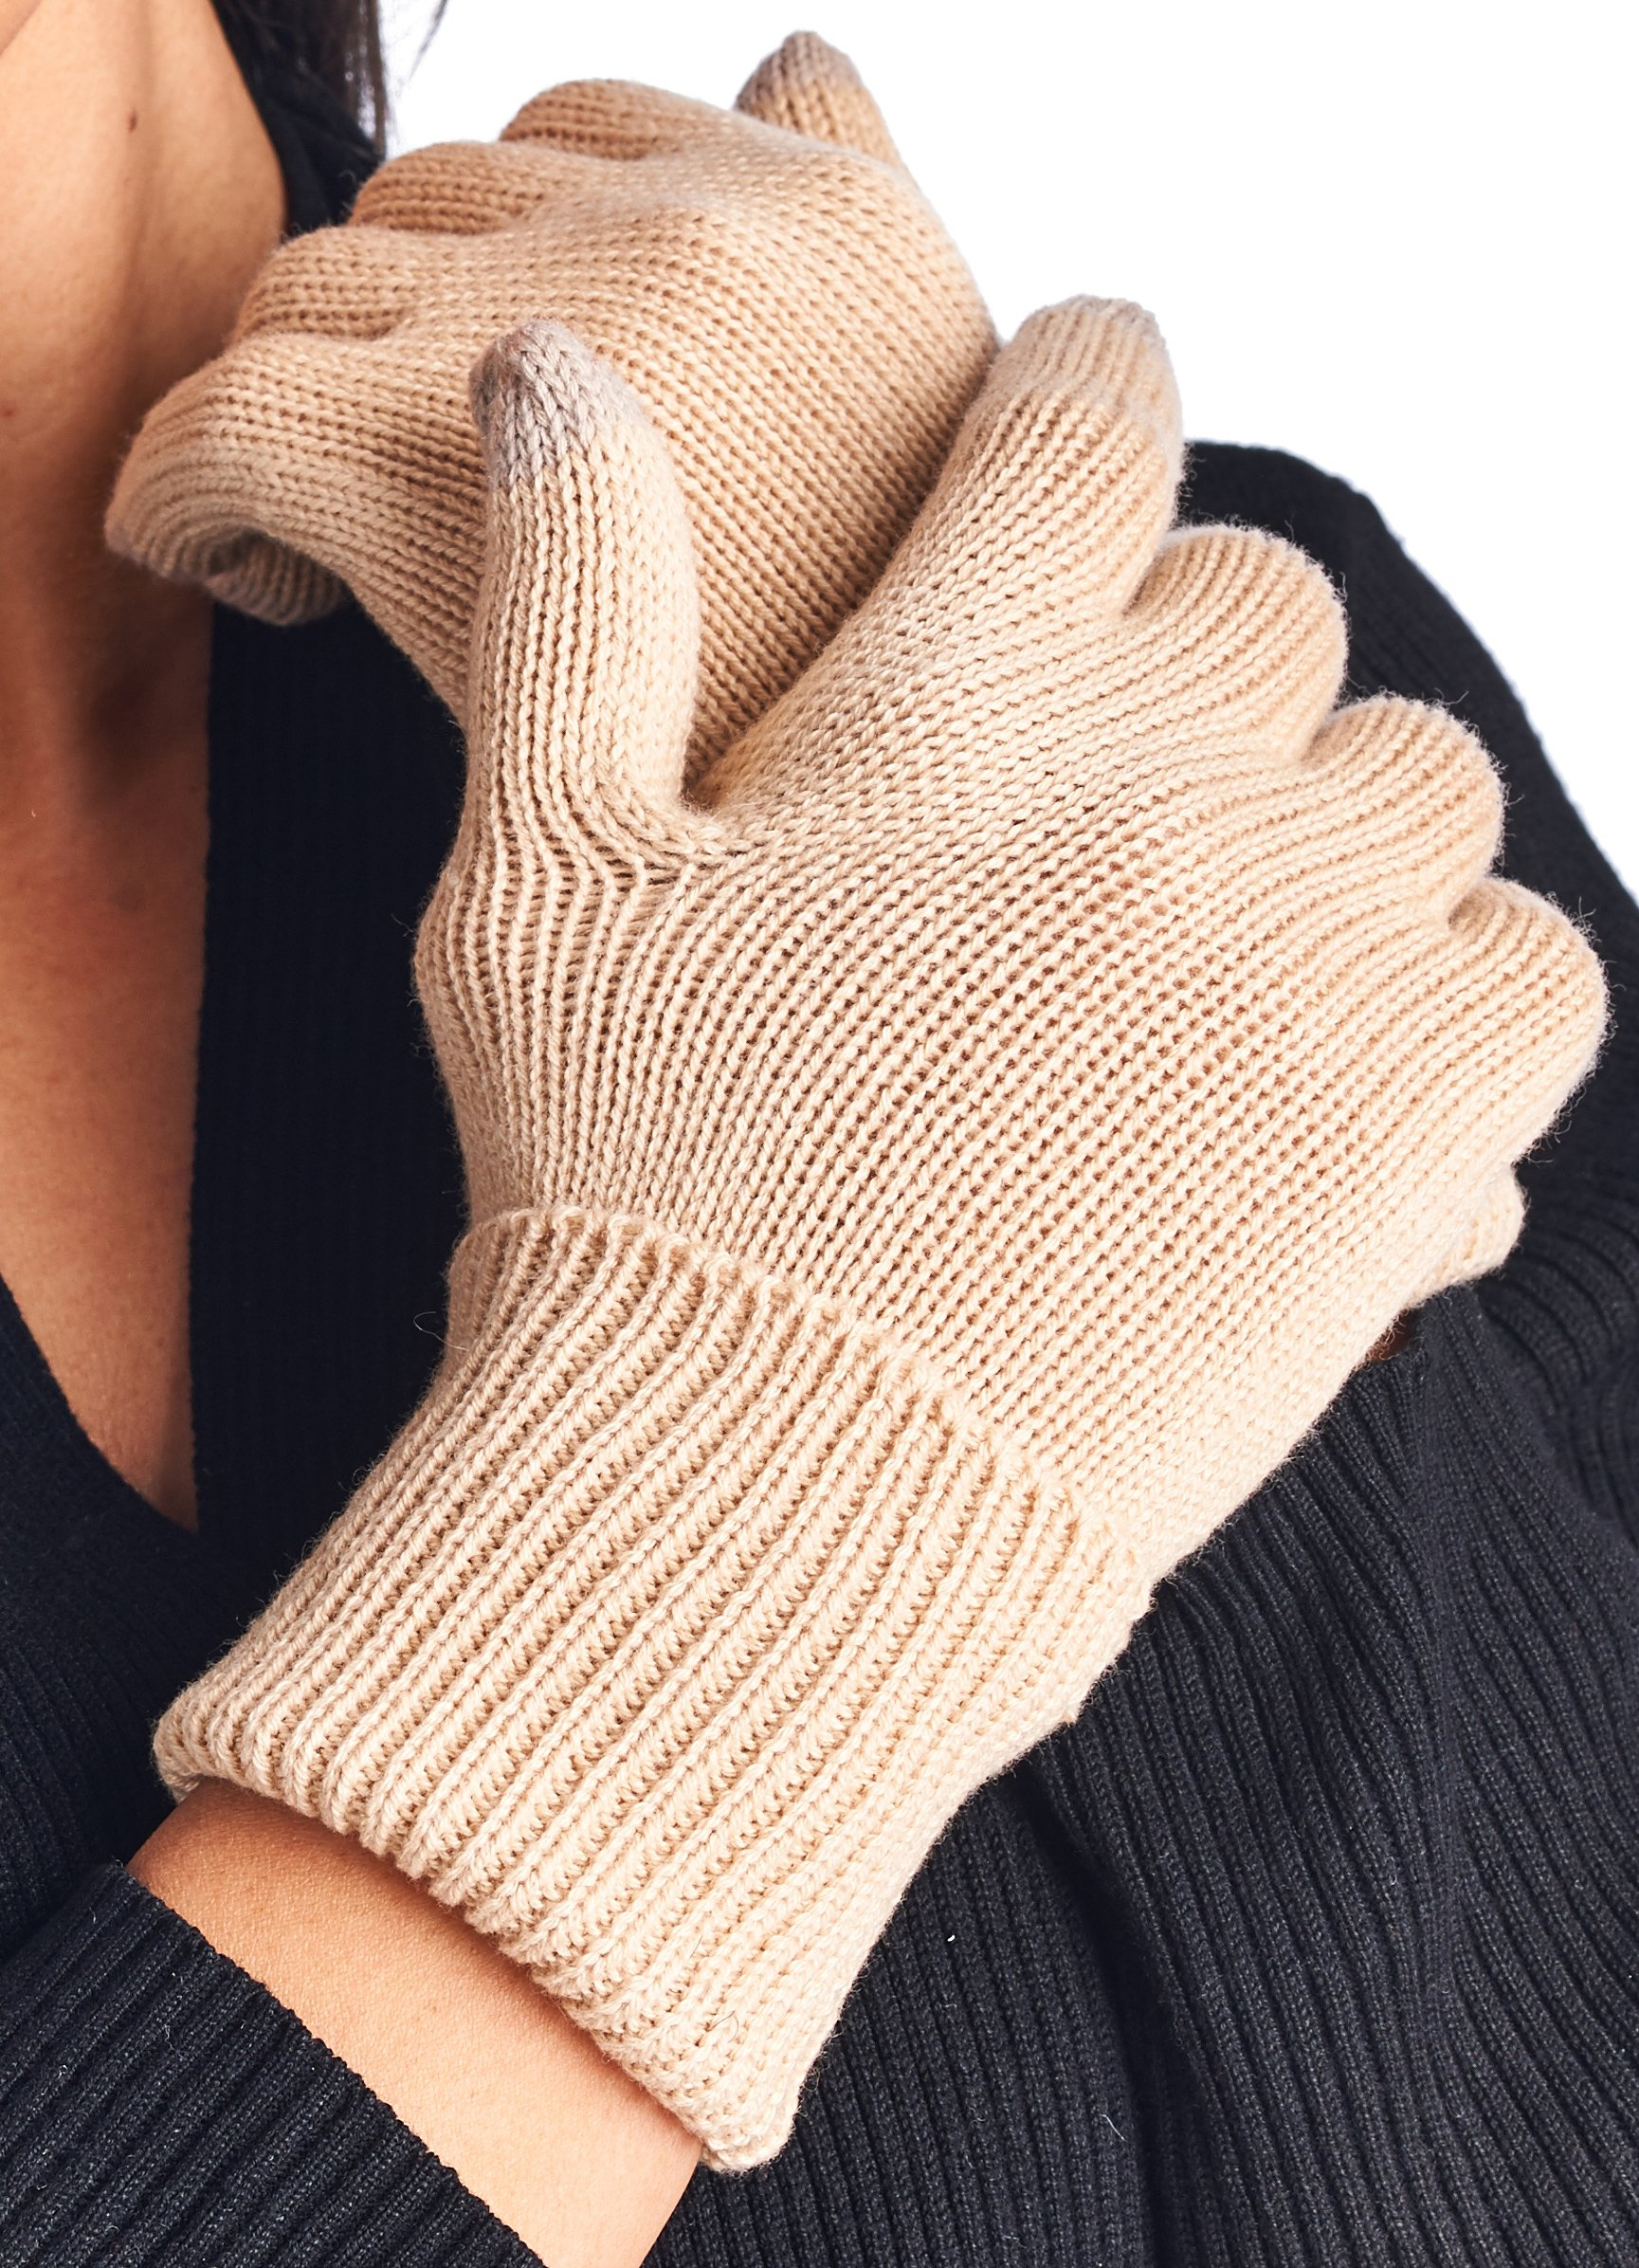 High Style Unisex All Fingers Texting Touchscreen Merino Wool Cashmere Smart Gloves (W001, S/M, 04-Beige)